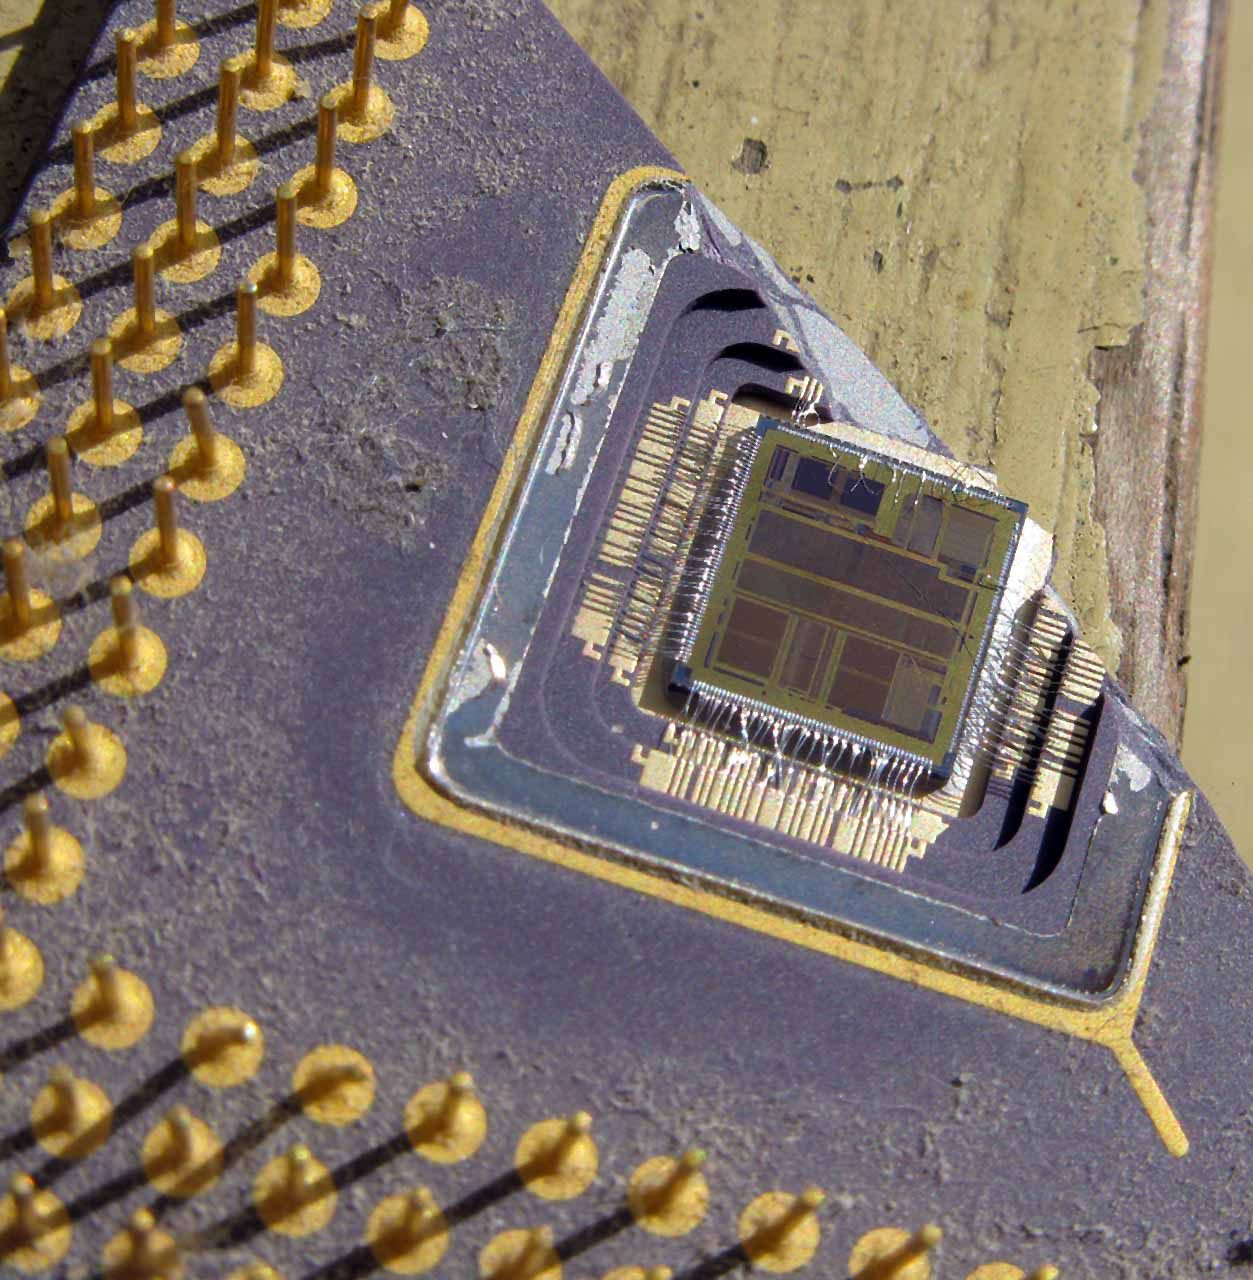 Close view of the now defunct computer chip